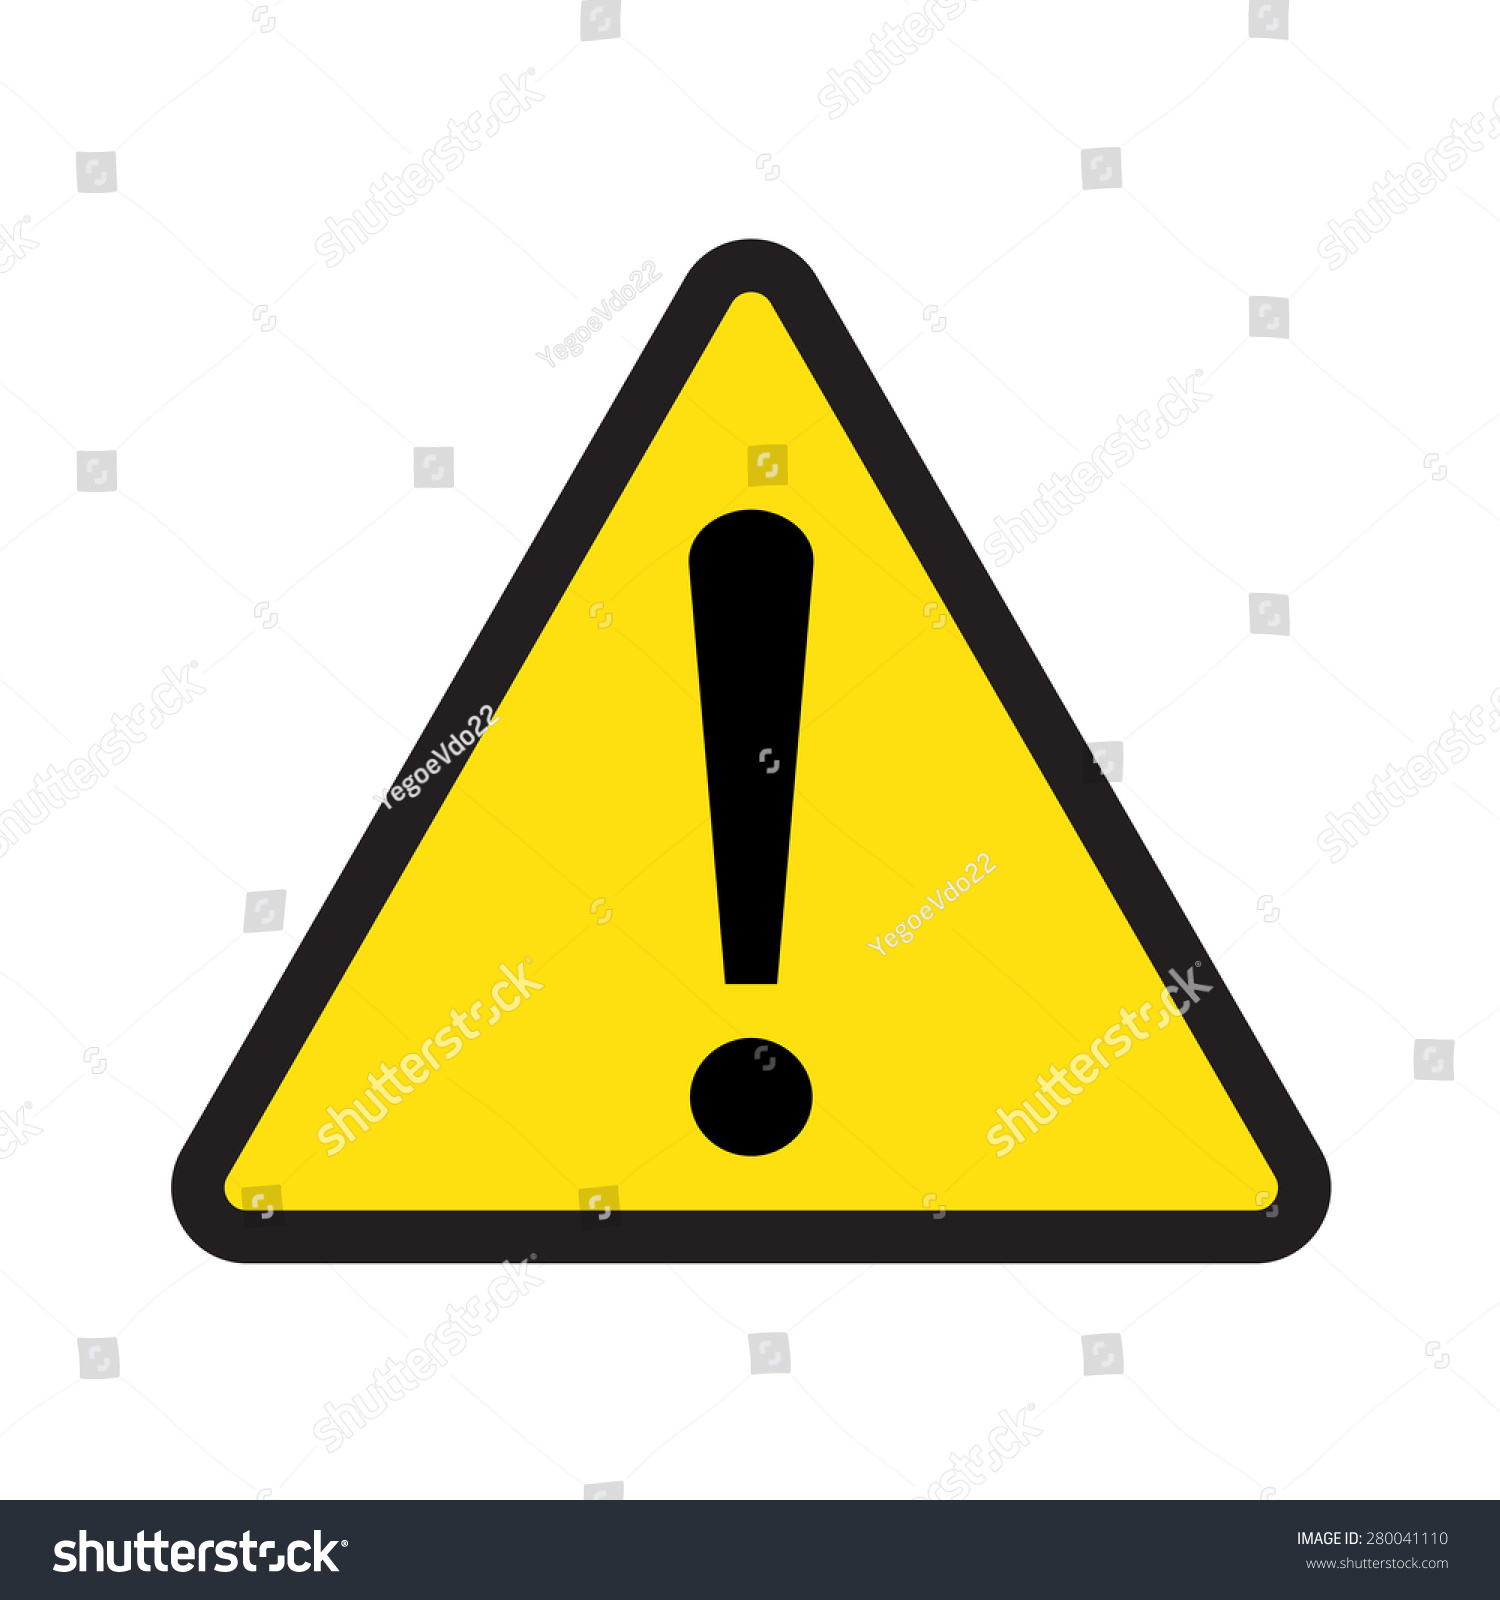 Caution Sign Vector Triangle Exclamation Mark Stock Vector ... | 1500 x 1600 jpeg 218kB